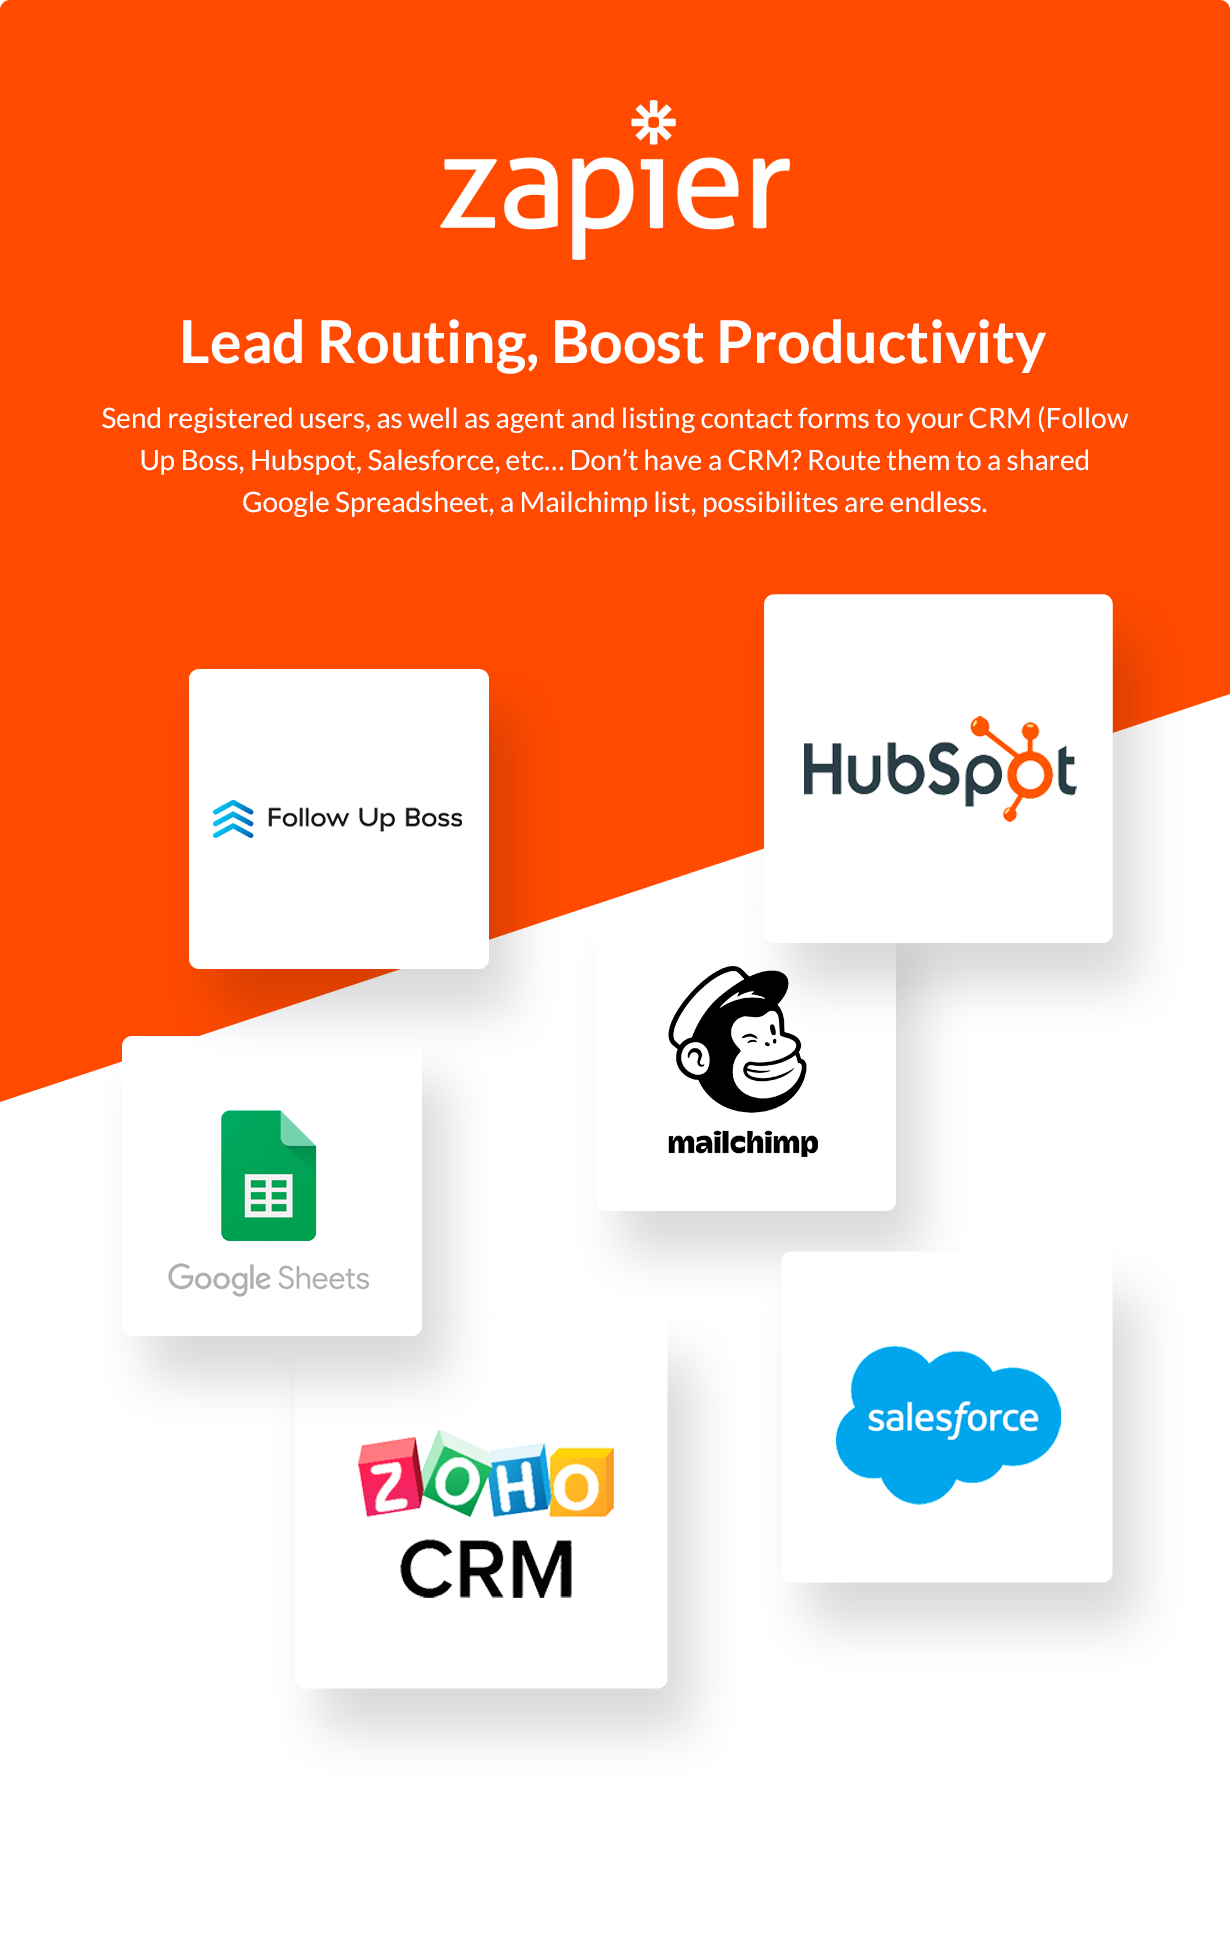 Lead Routing, Boost Productivity with Zapier in Real Estate 7